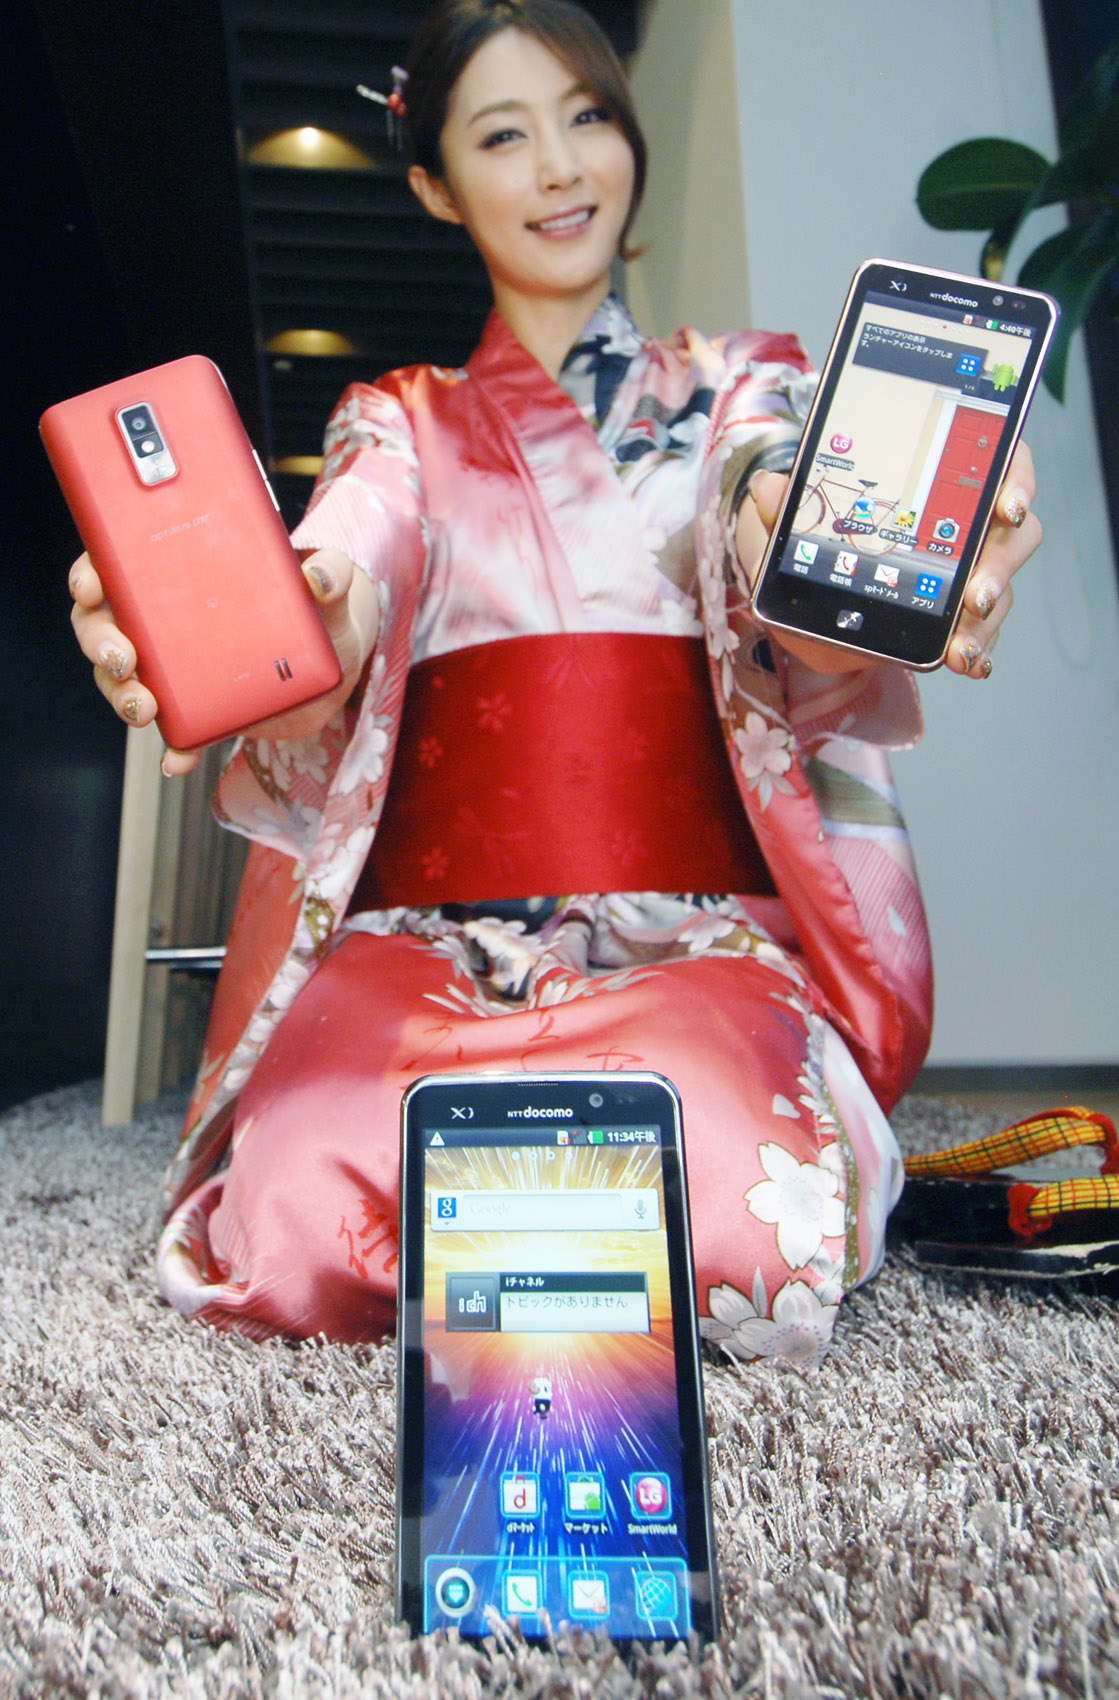 A woman in traditional Japanese clothing holds up two LG Optimus LTEs, showing the front and back, while a front view of LG Optimus LTE is displayed in front of her